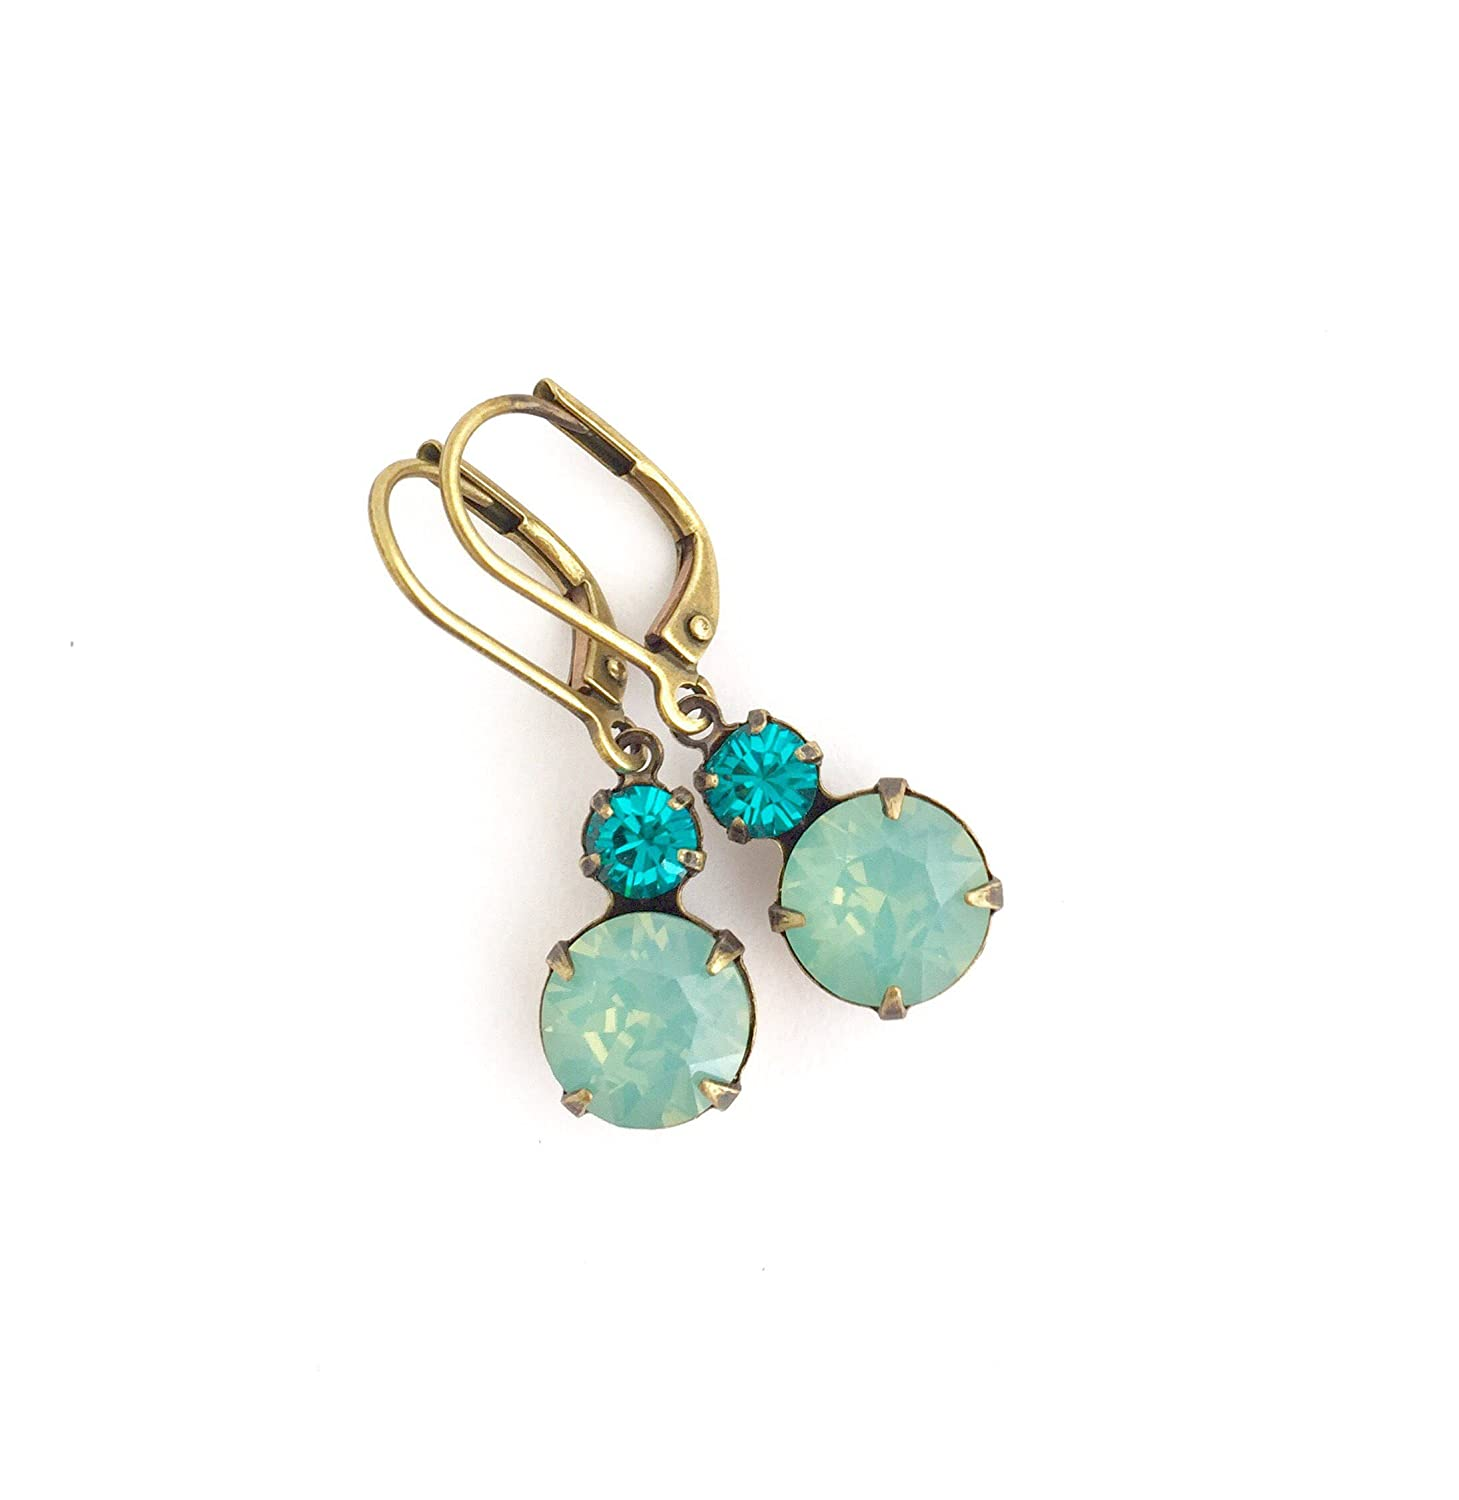 Teal Green Jewel Earrings Lever-back Ear Wires